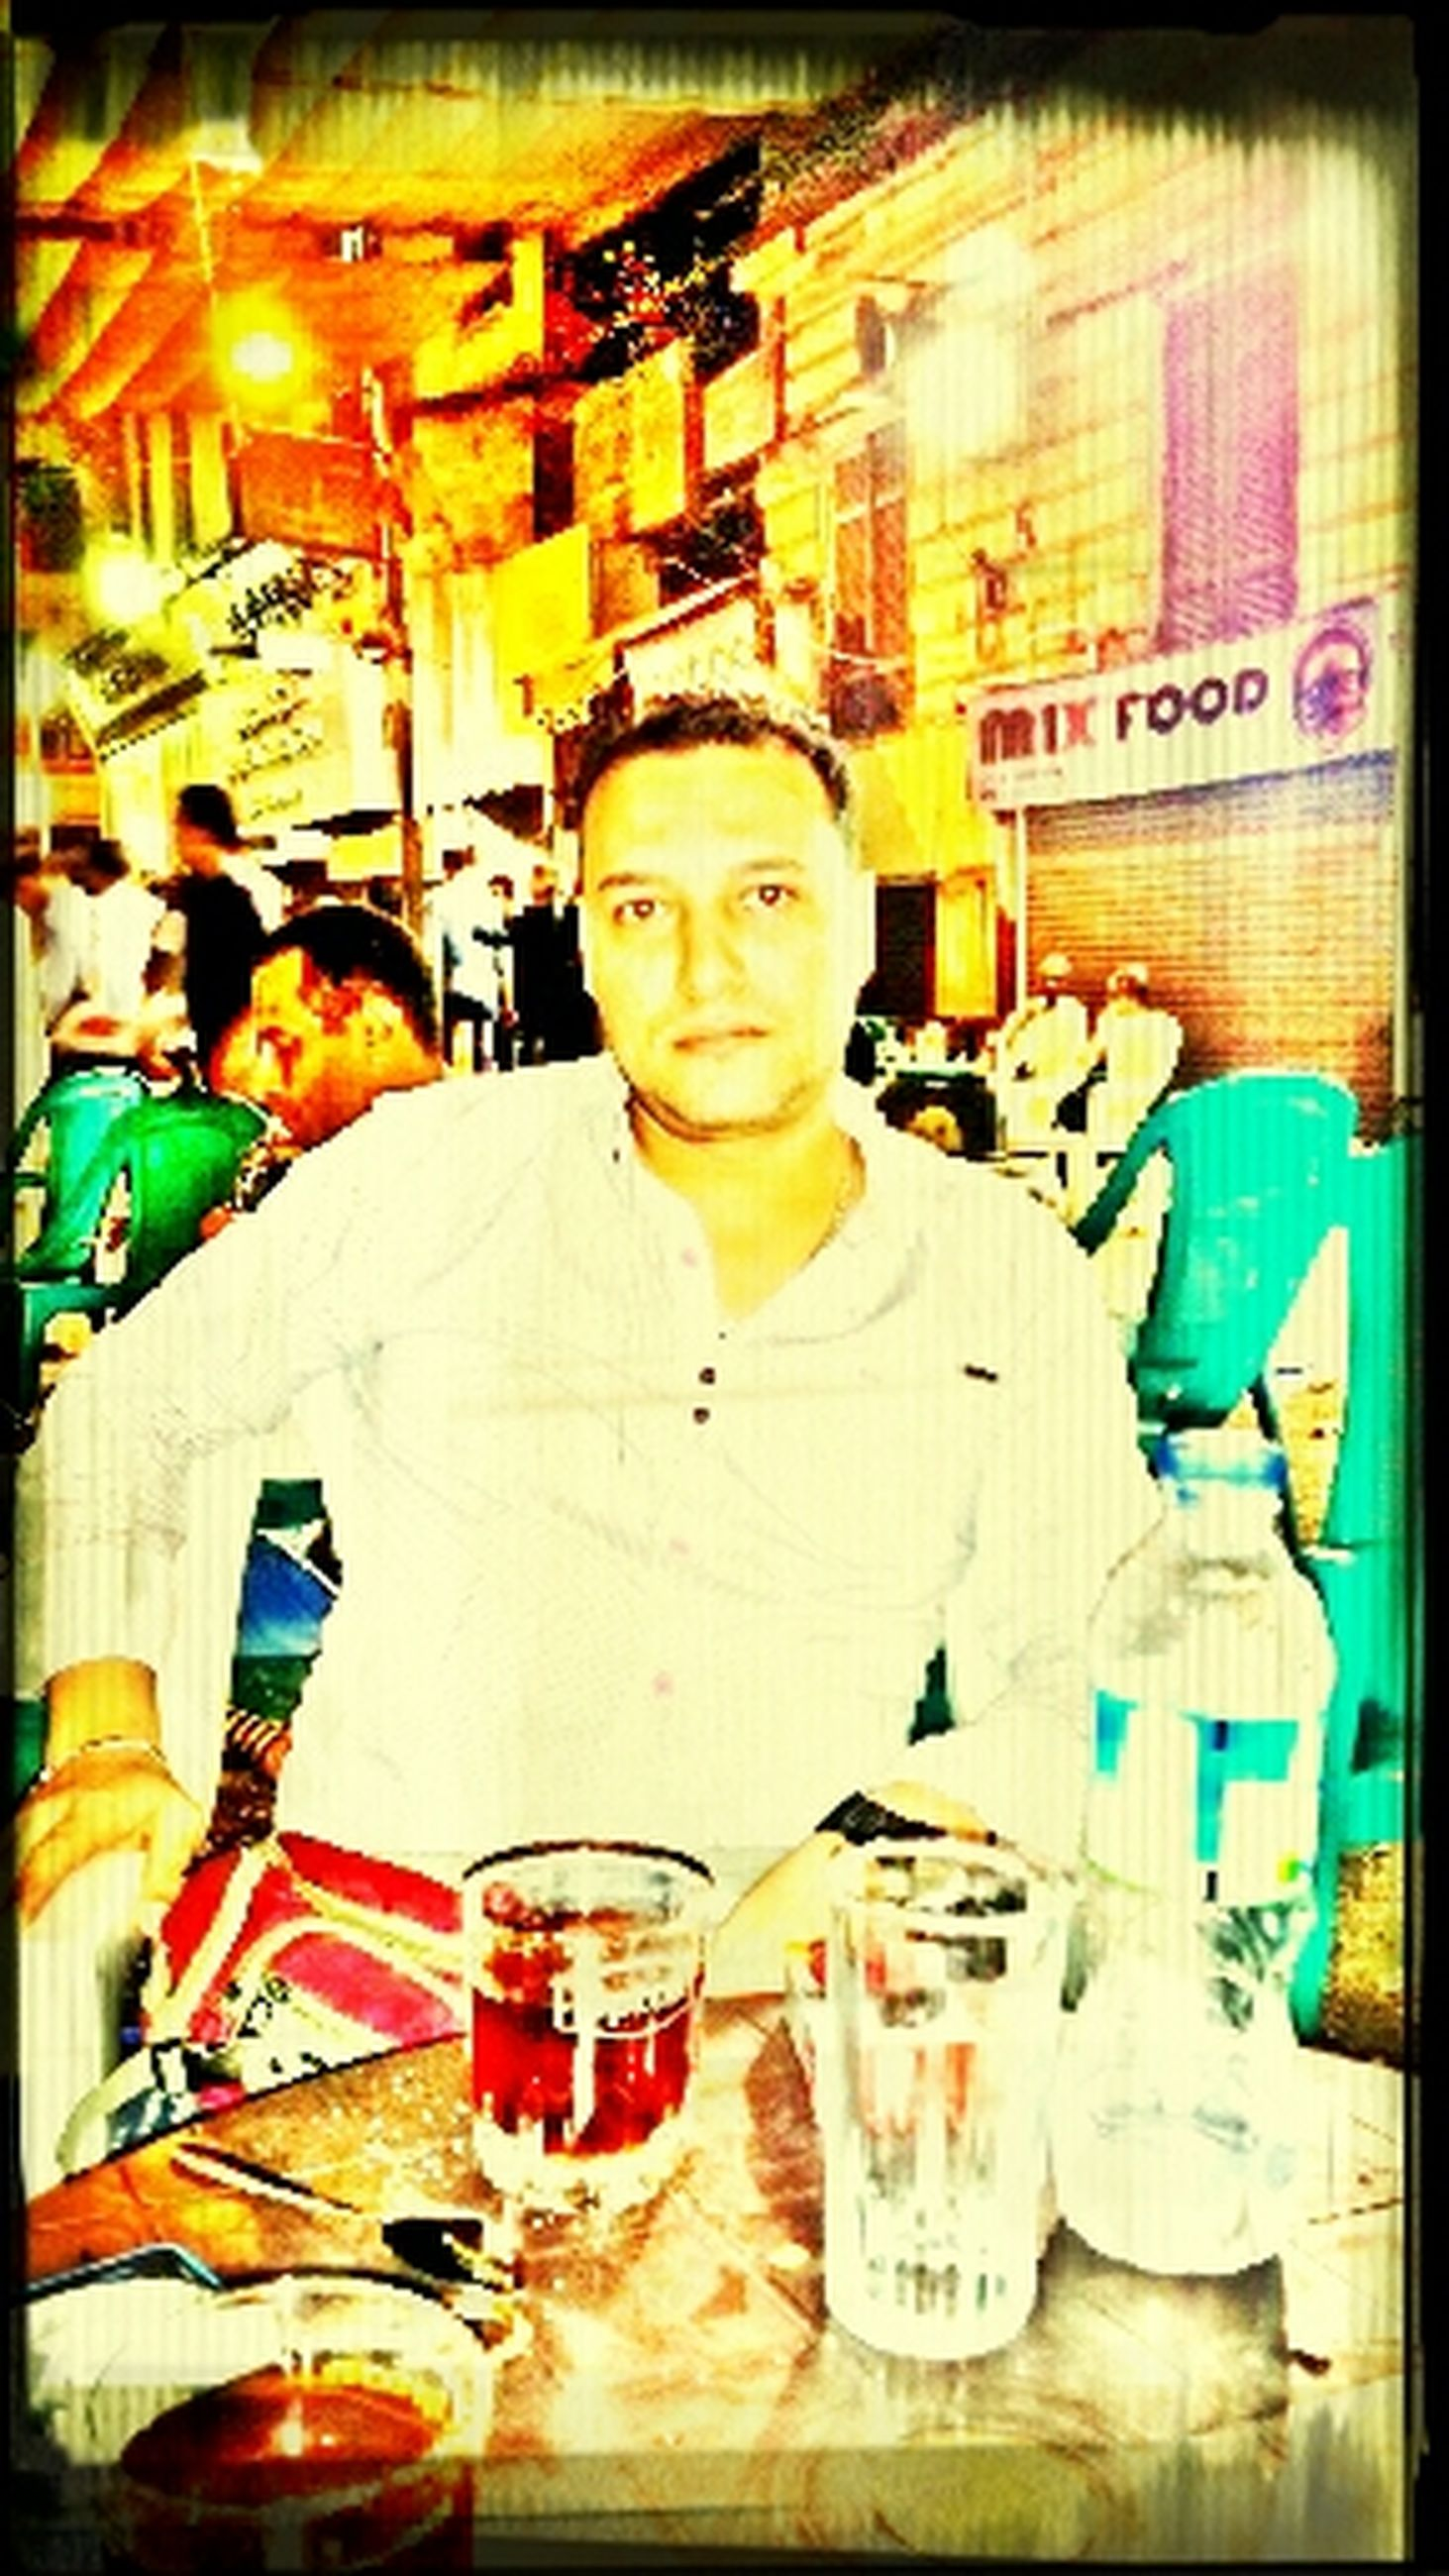 indoors, transfer print, food and drink, drink, auto post production filter, lifestyles, casual clothing, front view, leisure activity, human representation, person, refreshment, incidental people, food, looking at camera, store, restaurant, sitting